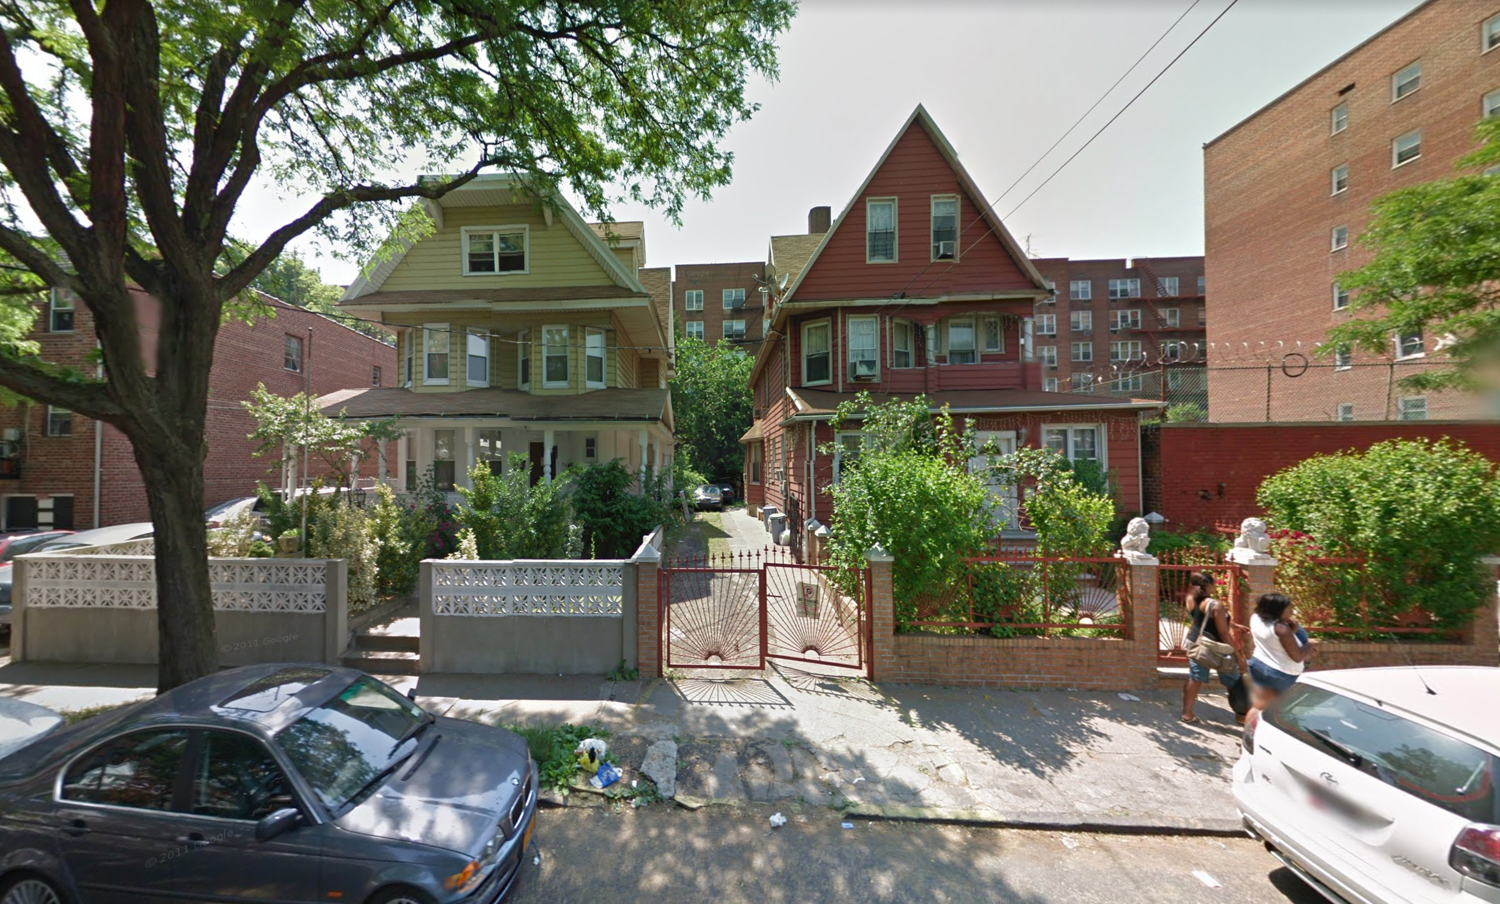 762-764 East 32nd Street, via Google Maps